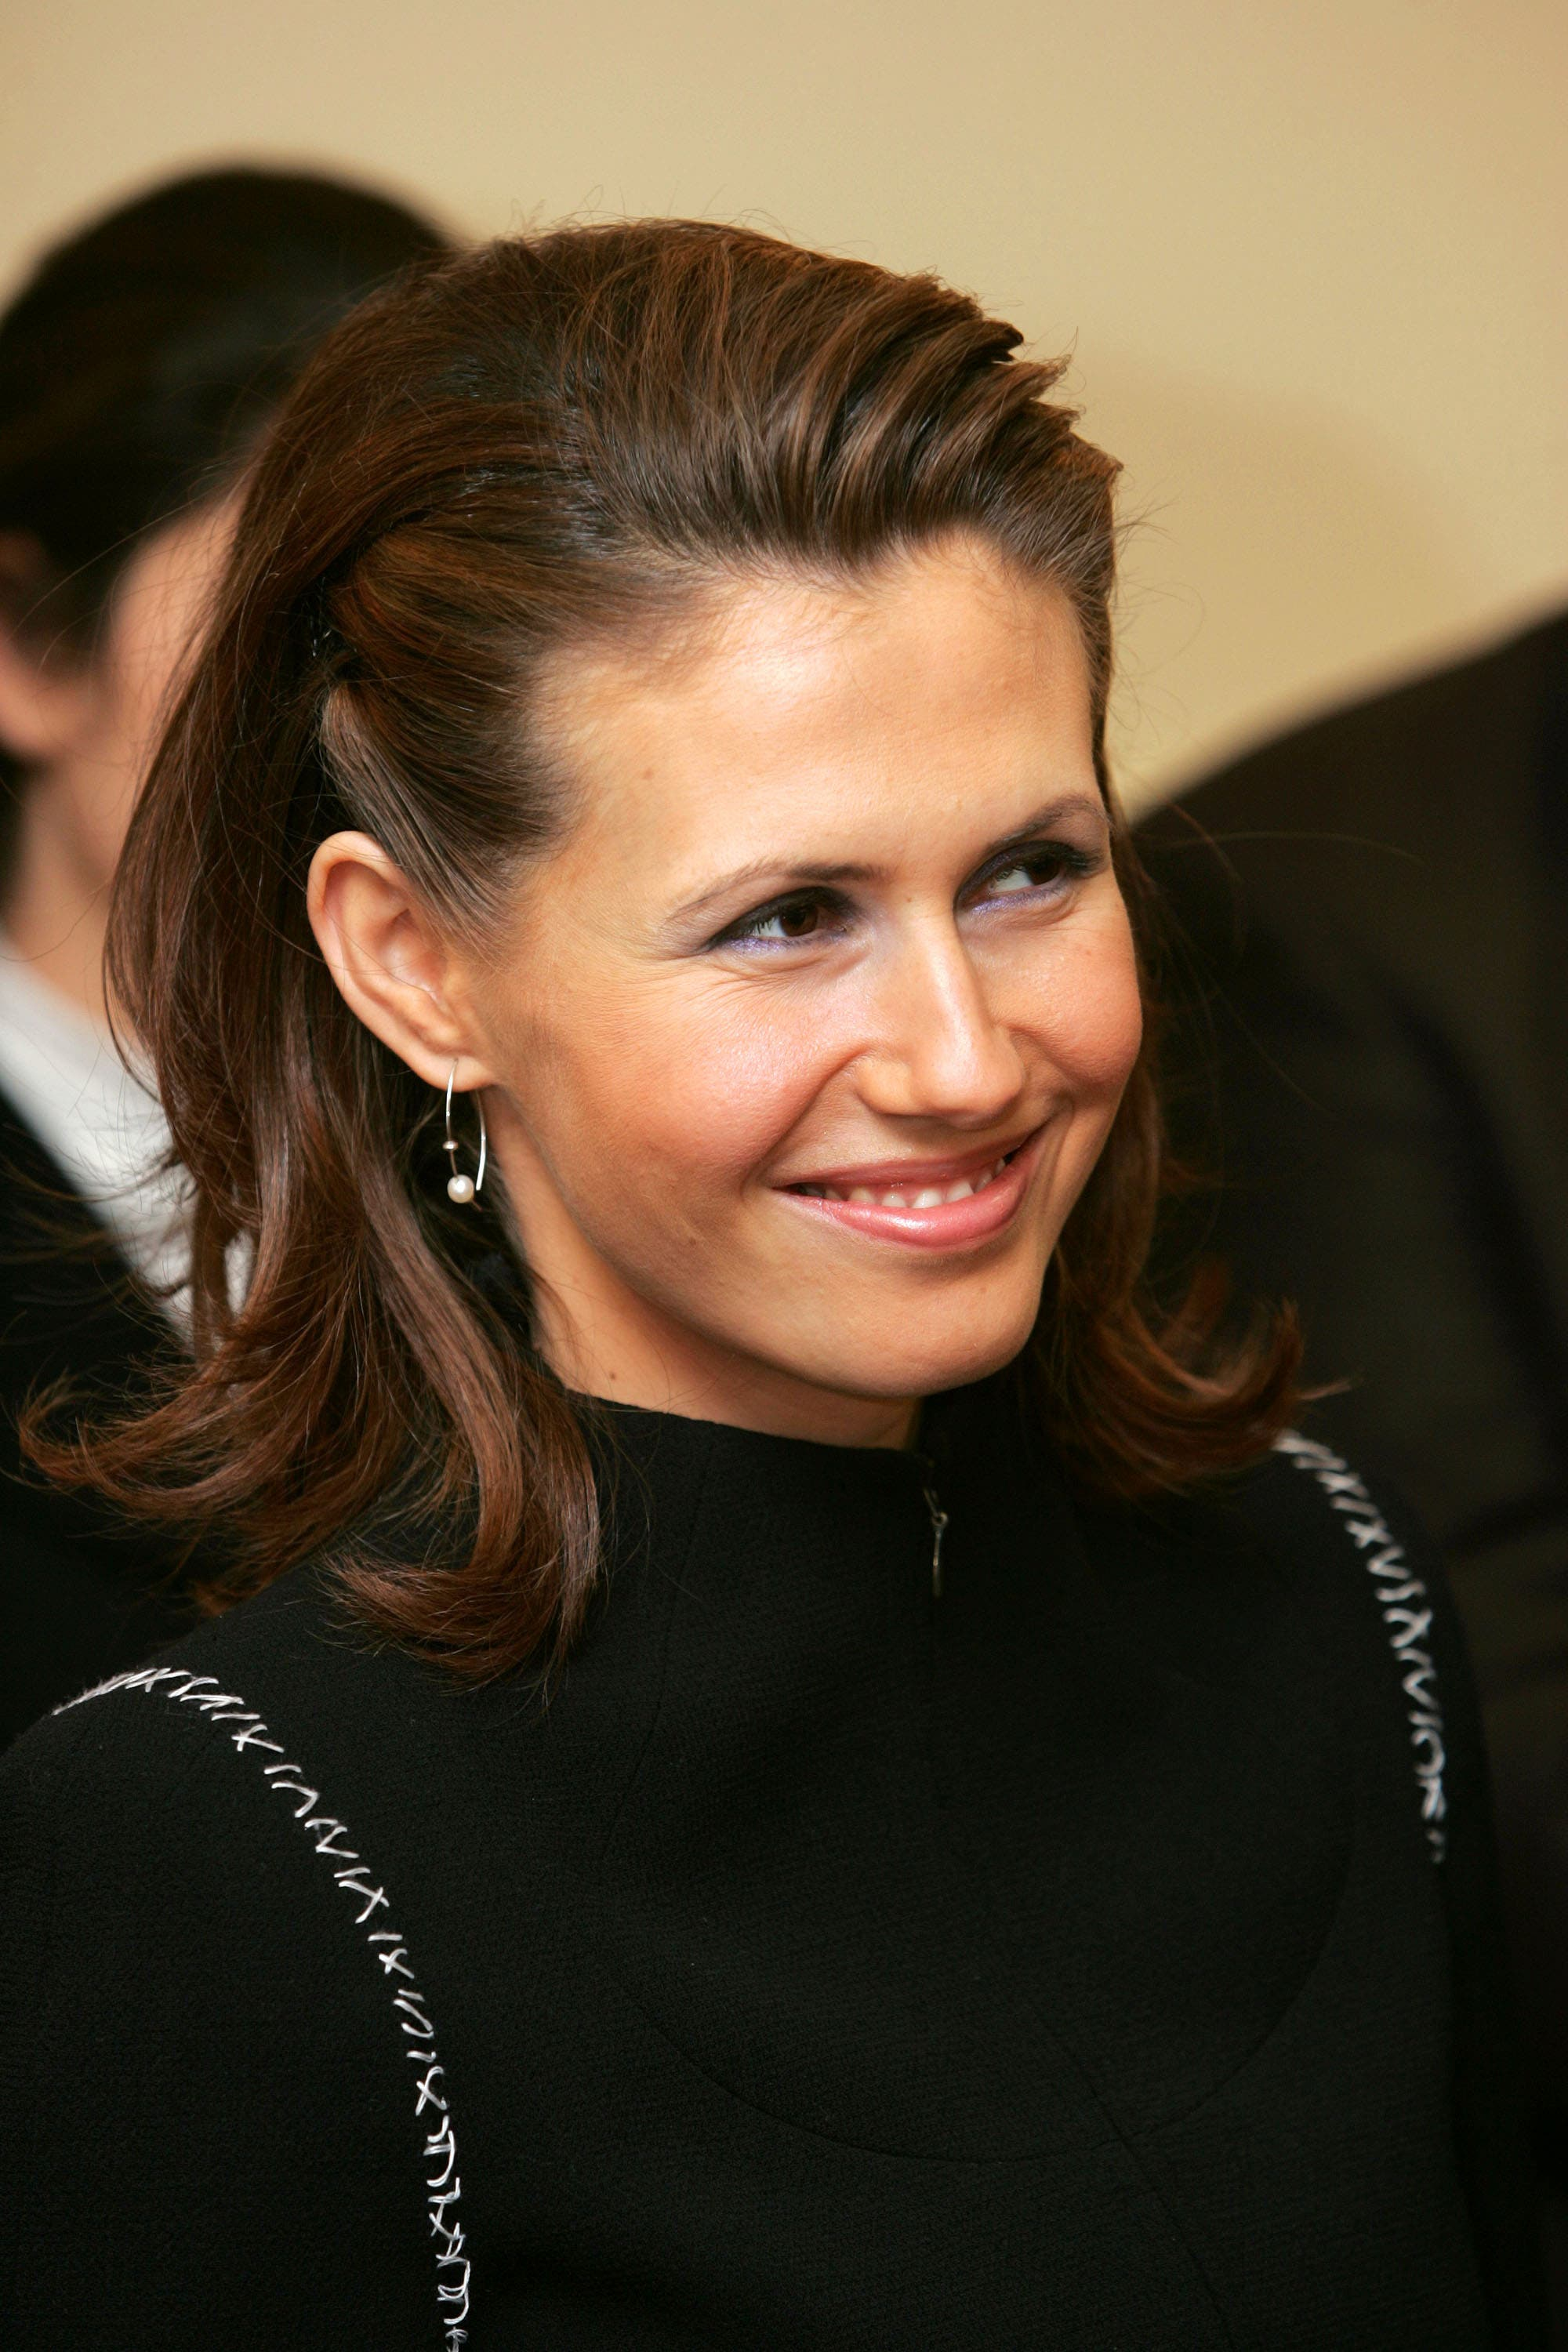 Bashar al-Assad's wife in Vogue: Ill-timed, lashes out ...